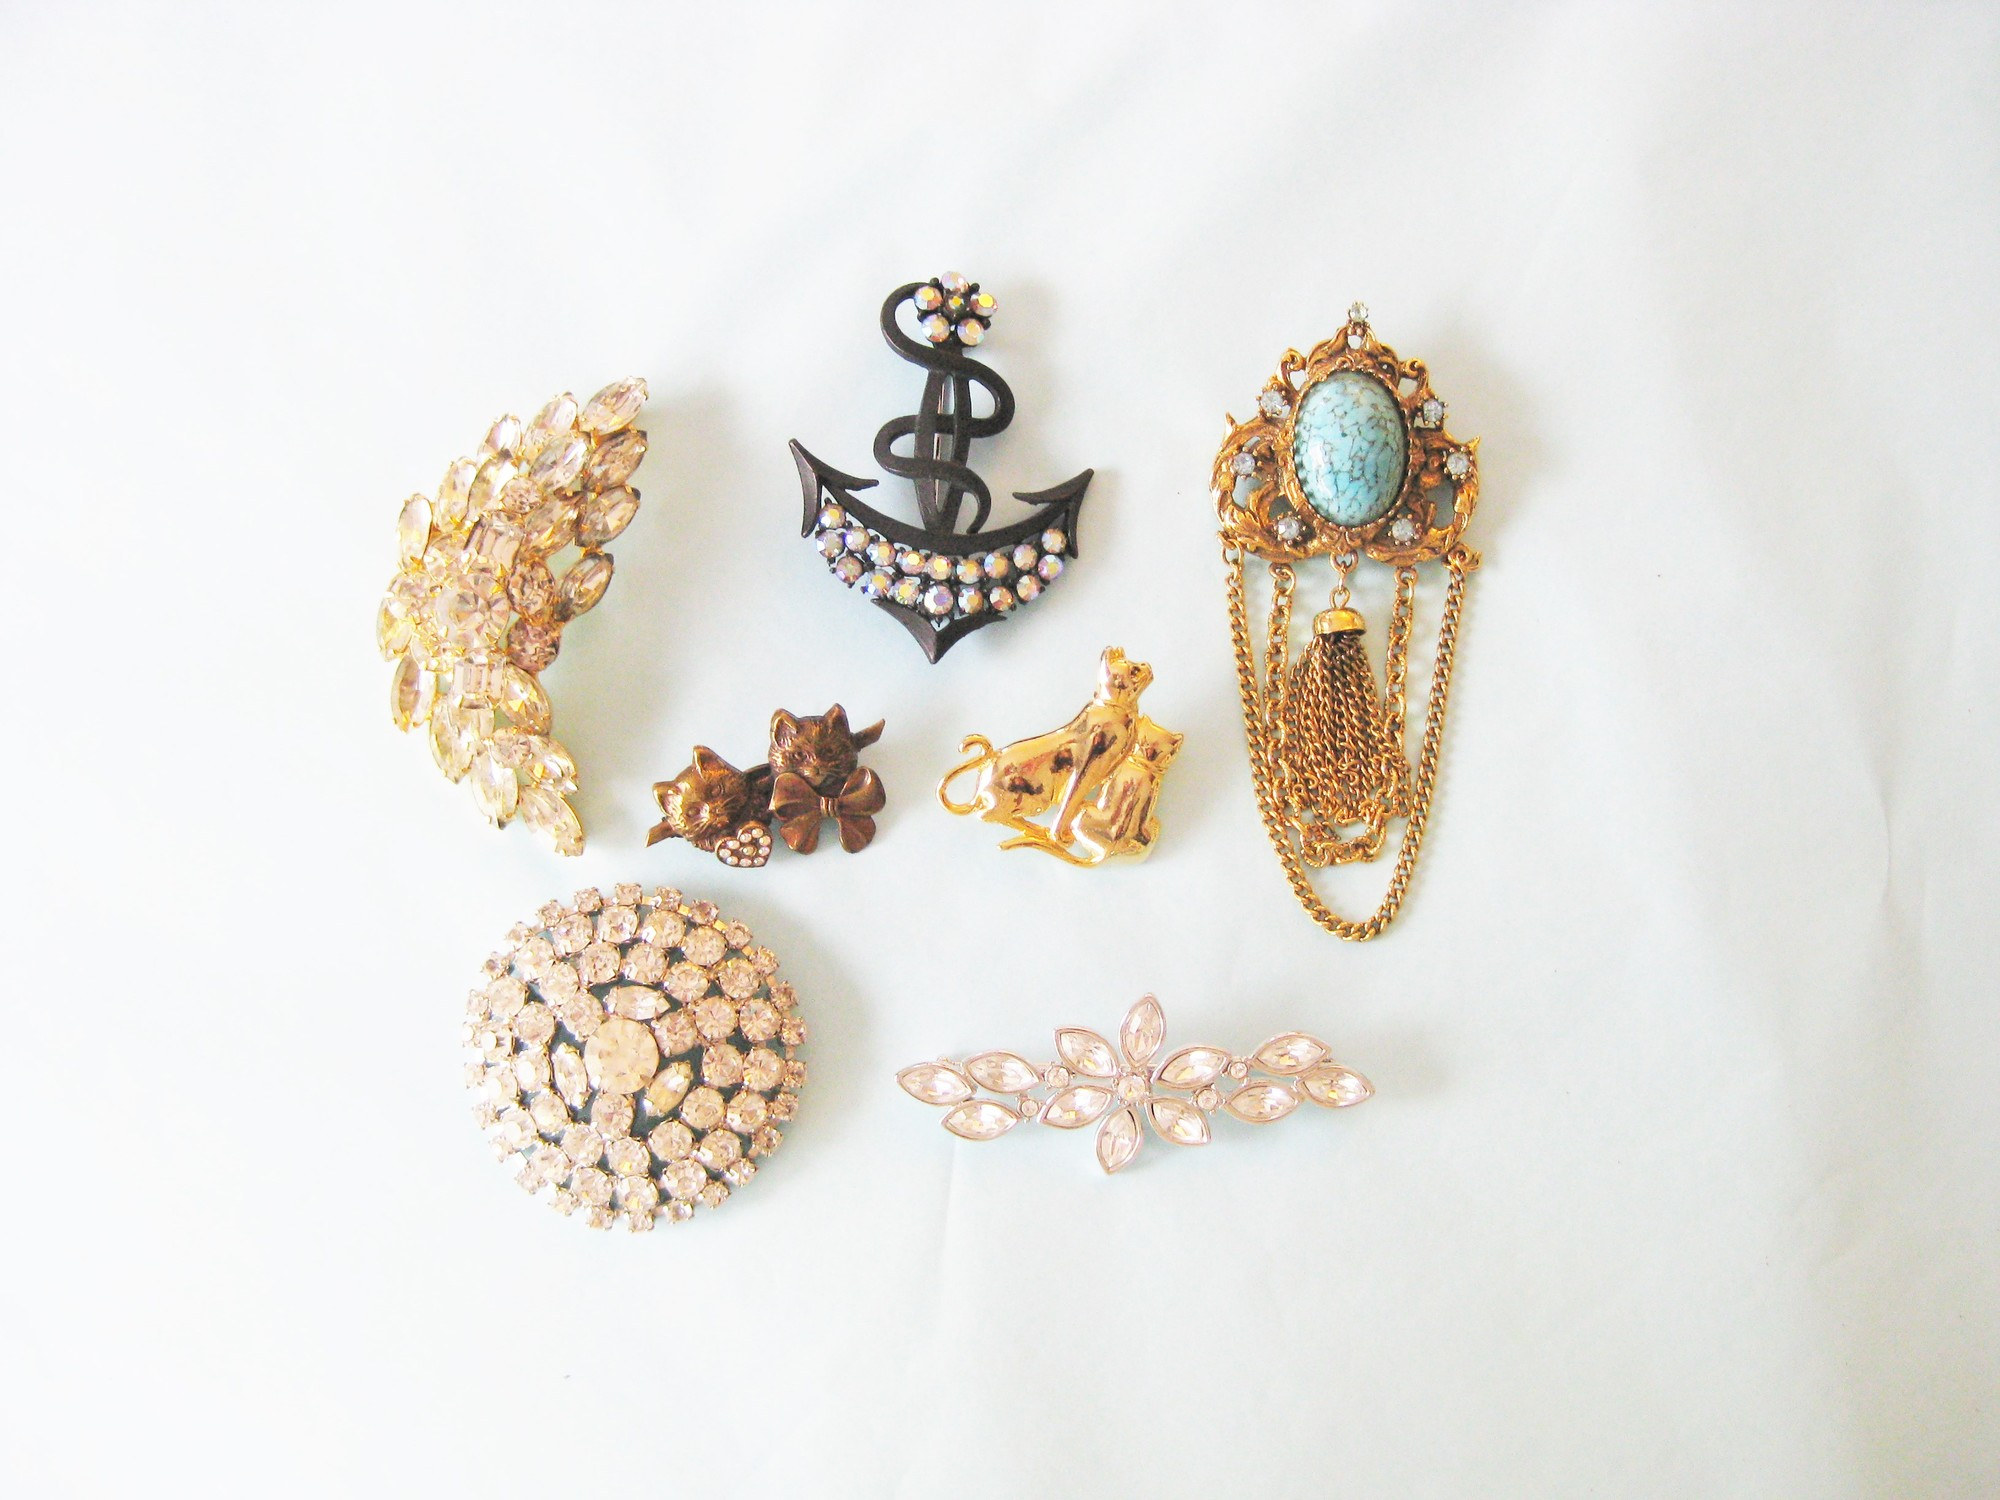 This is a pretty collection of vintage costume 1960s statement brooches<br /> <br /> The collection consists of:<br /> a. Round Rhinestone Coat Pin 2.5in diameter, the pin is bent but works fine, it might have been made this way to accomodate the thickness of a coat?<br /> b. Signed Monet straight floral pin with large rhinestones<br /> c. Faux turquoise with blue rhinestones and dangling chains<br /> d. Crescent leaf pin in rhinstones set in gold<br /> e. Black metal Anchor with irridescent rhinestones<br /> f. Antiqued coppery gold tone pin, two sweet cats with a little circle of tiny rhinestones<br /> g. Gold cat pin, a mother and her kitten.<br /> <br /> All in great shape, I have photos of the back of each pin, lmk if you'd like to see any of them.<br /> <br /> Thanks for looking!<br /> #36068